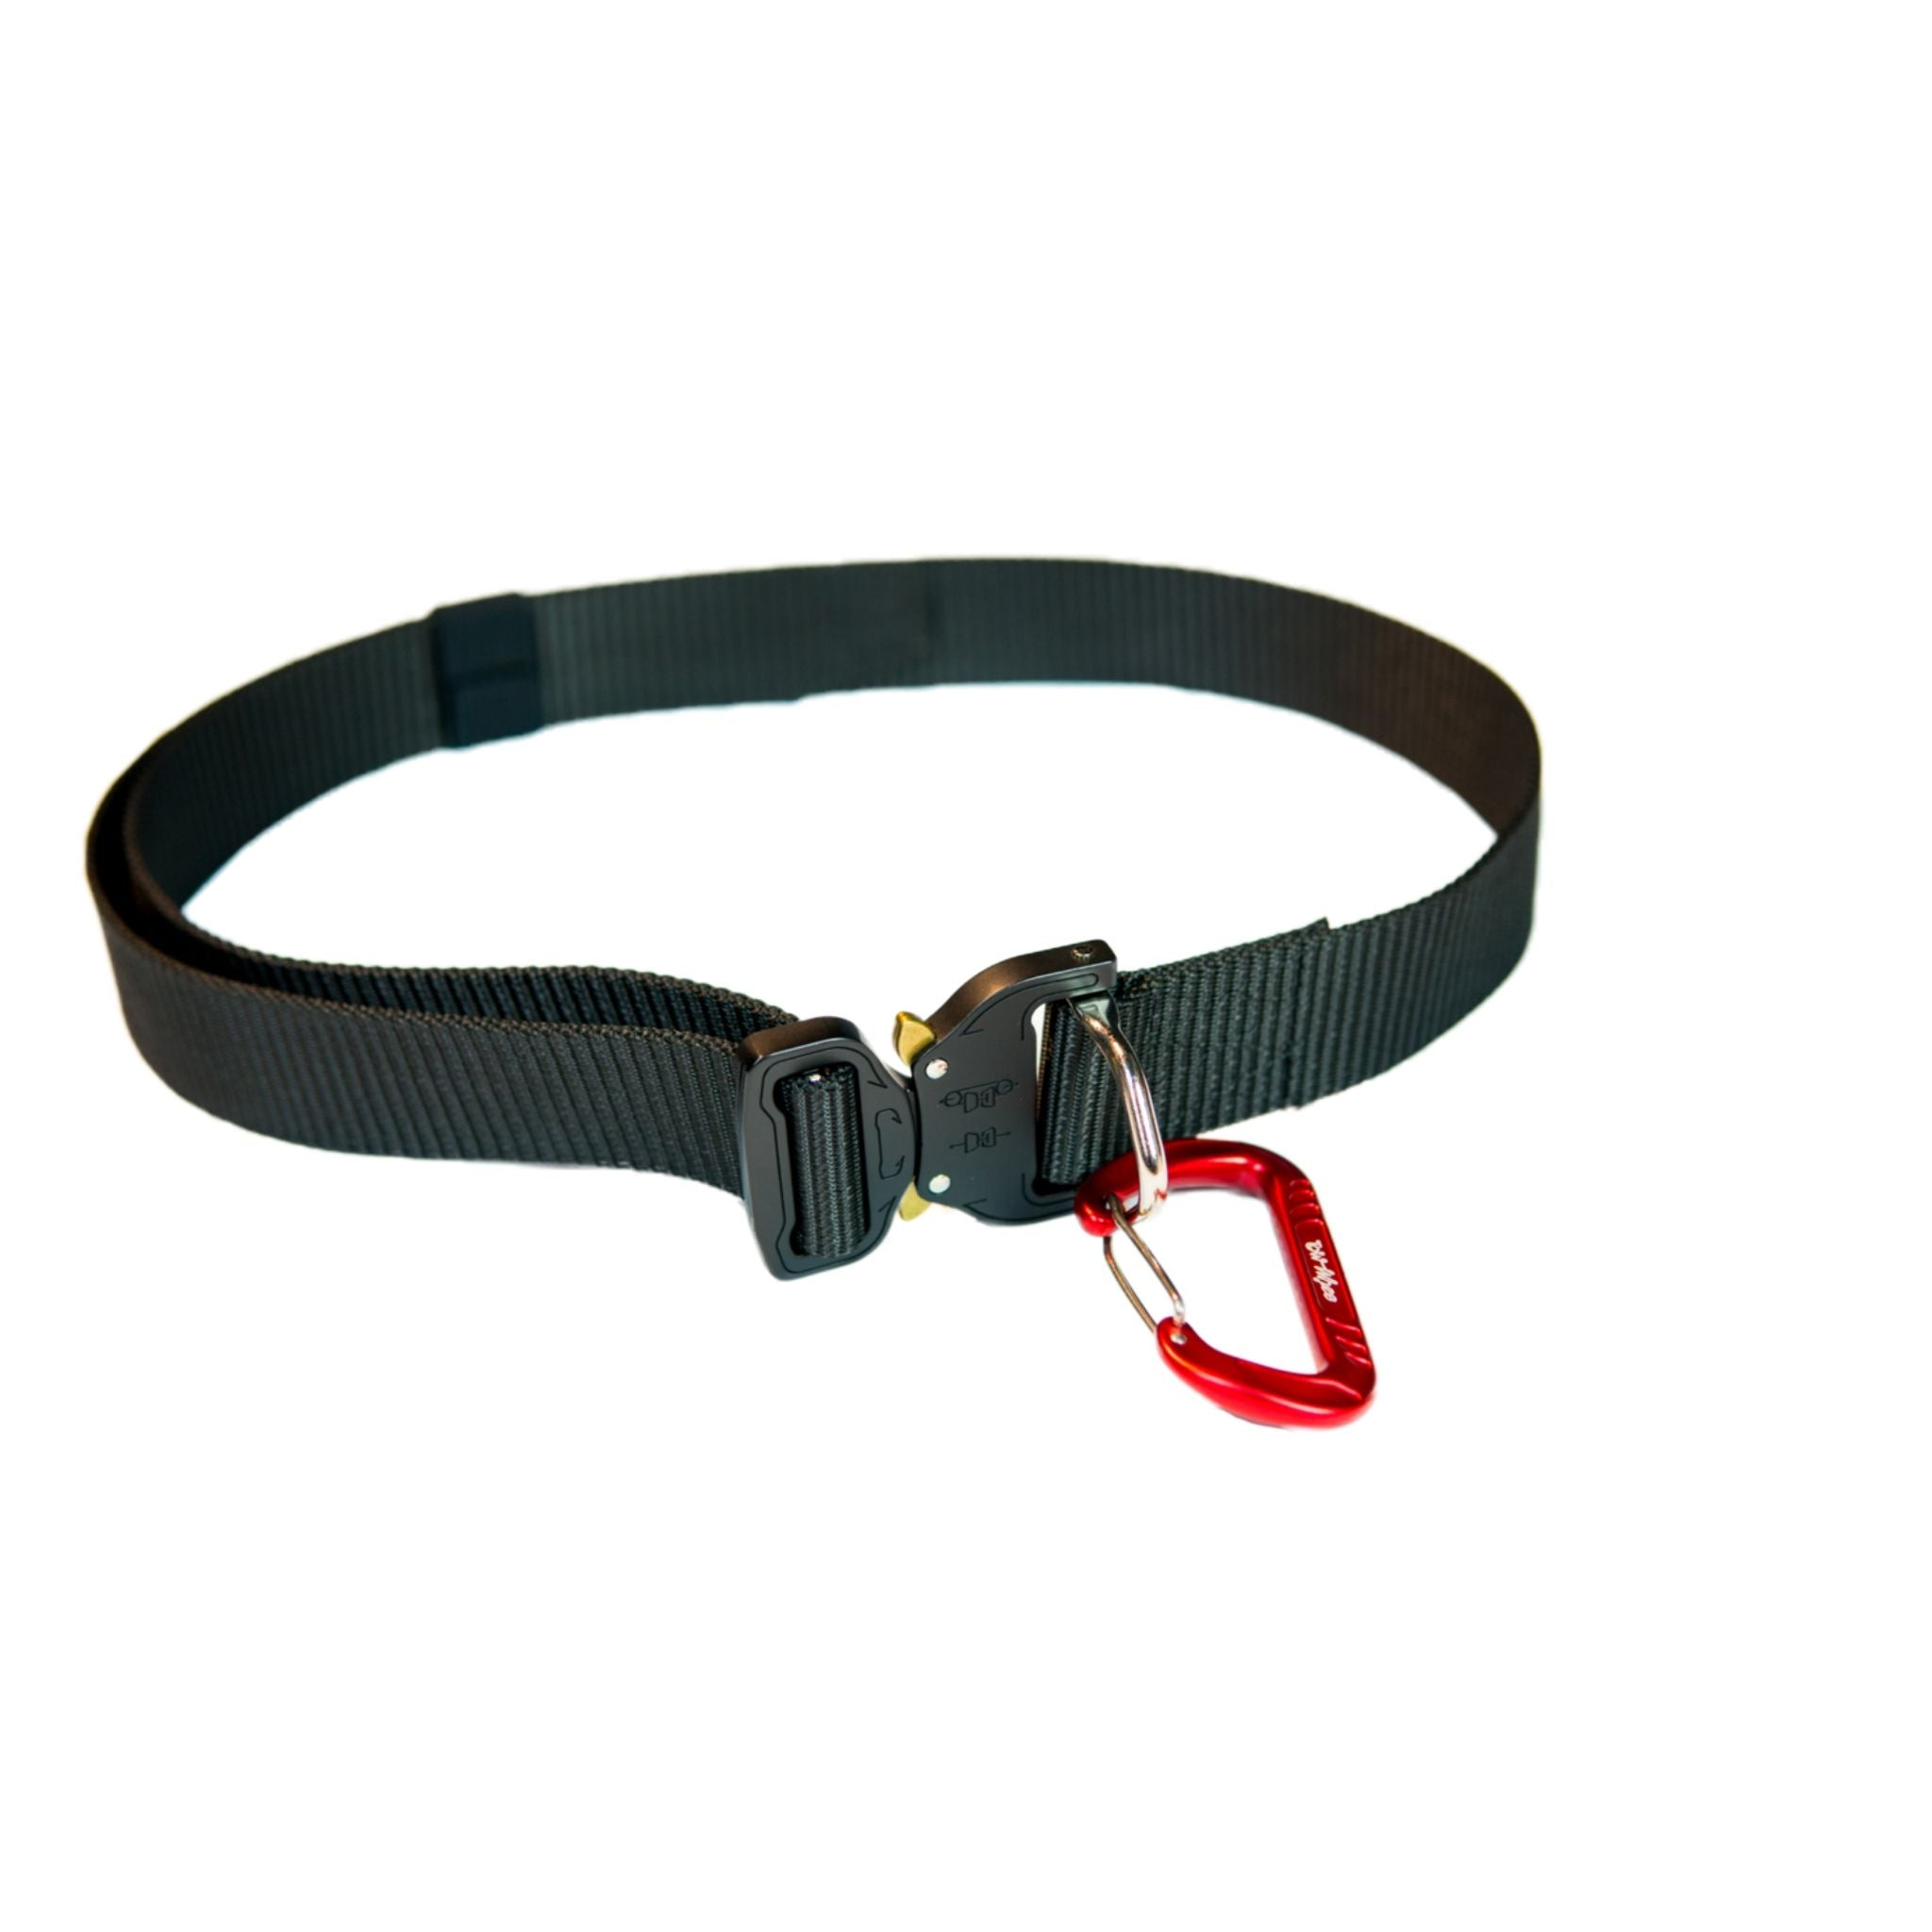 TowWhee Waist belt latched up